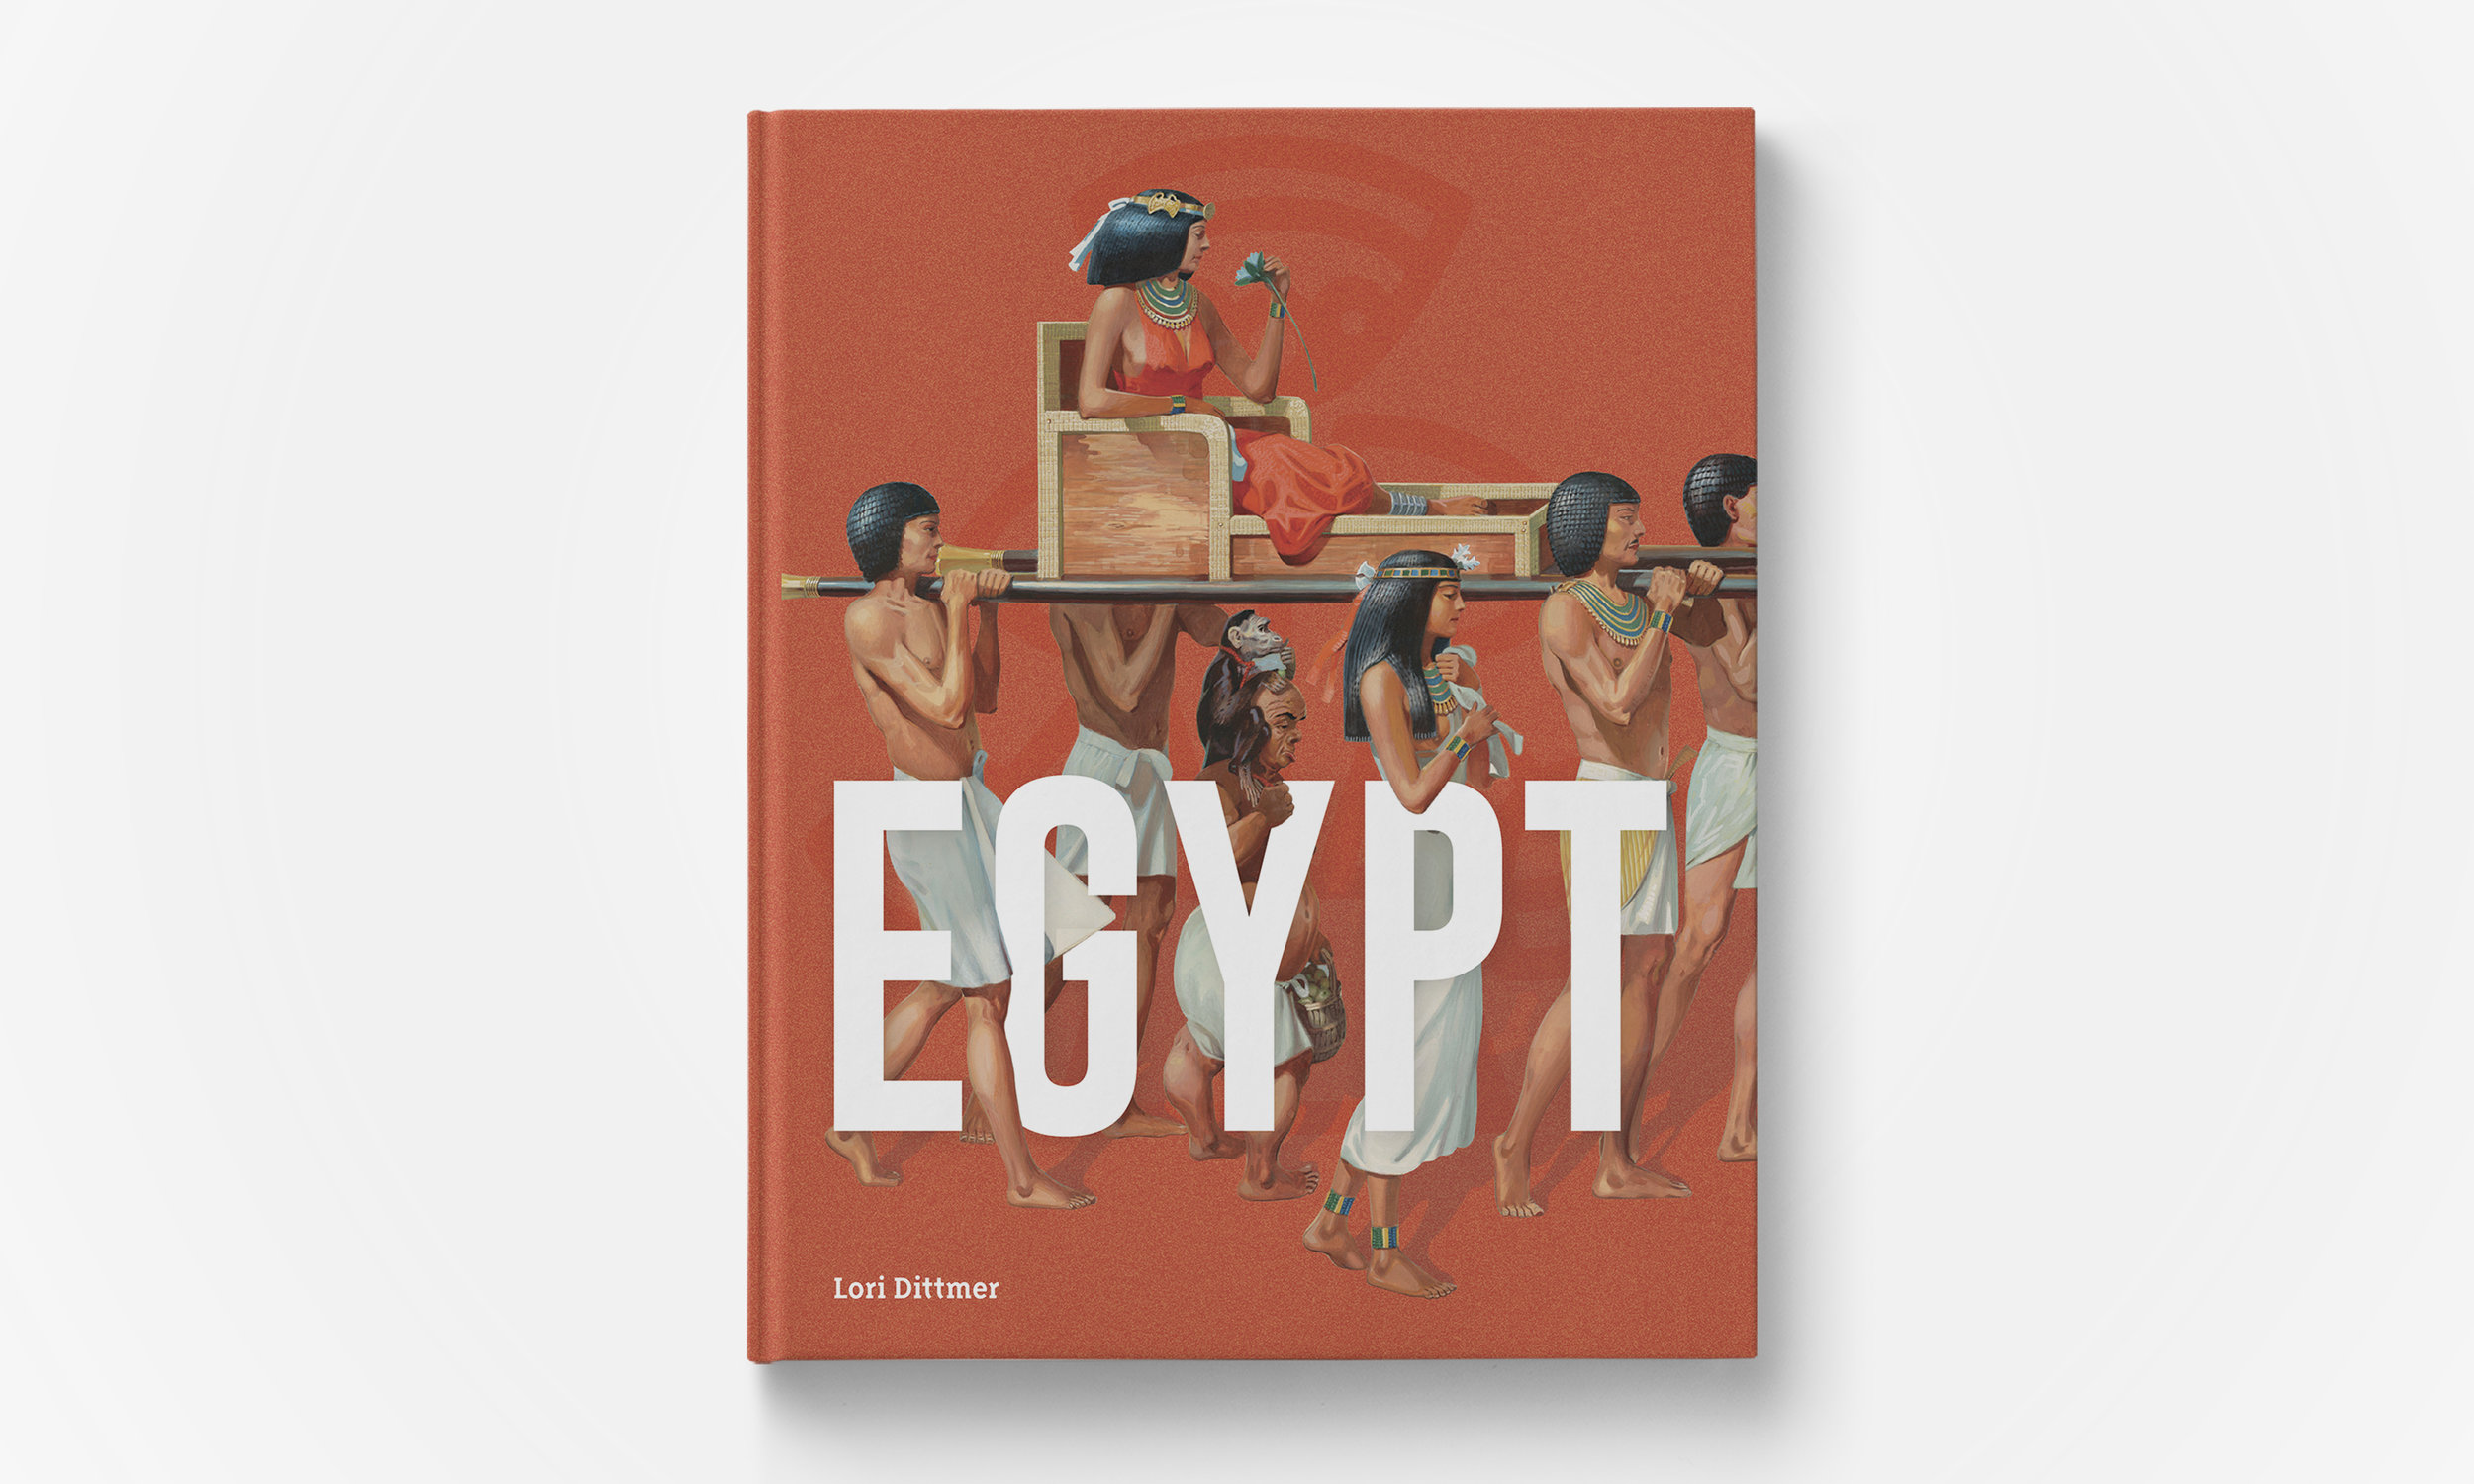 at_egypt_cover.jpg